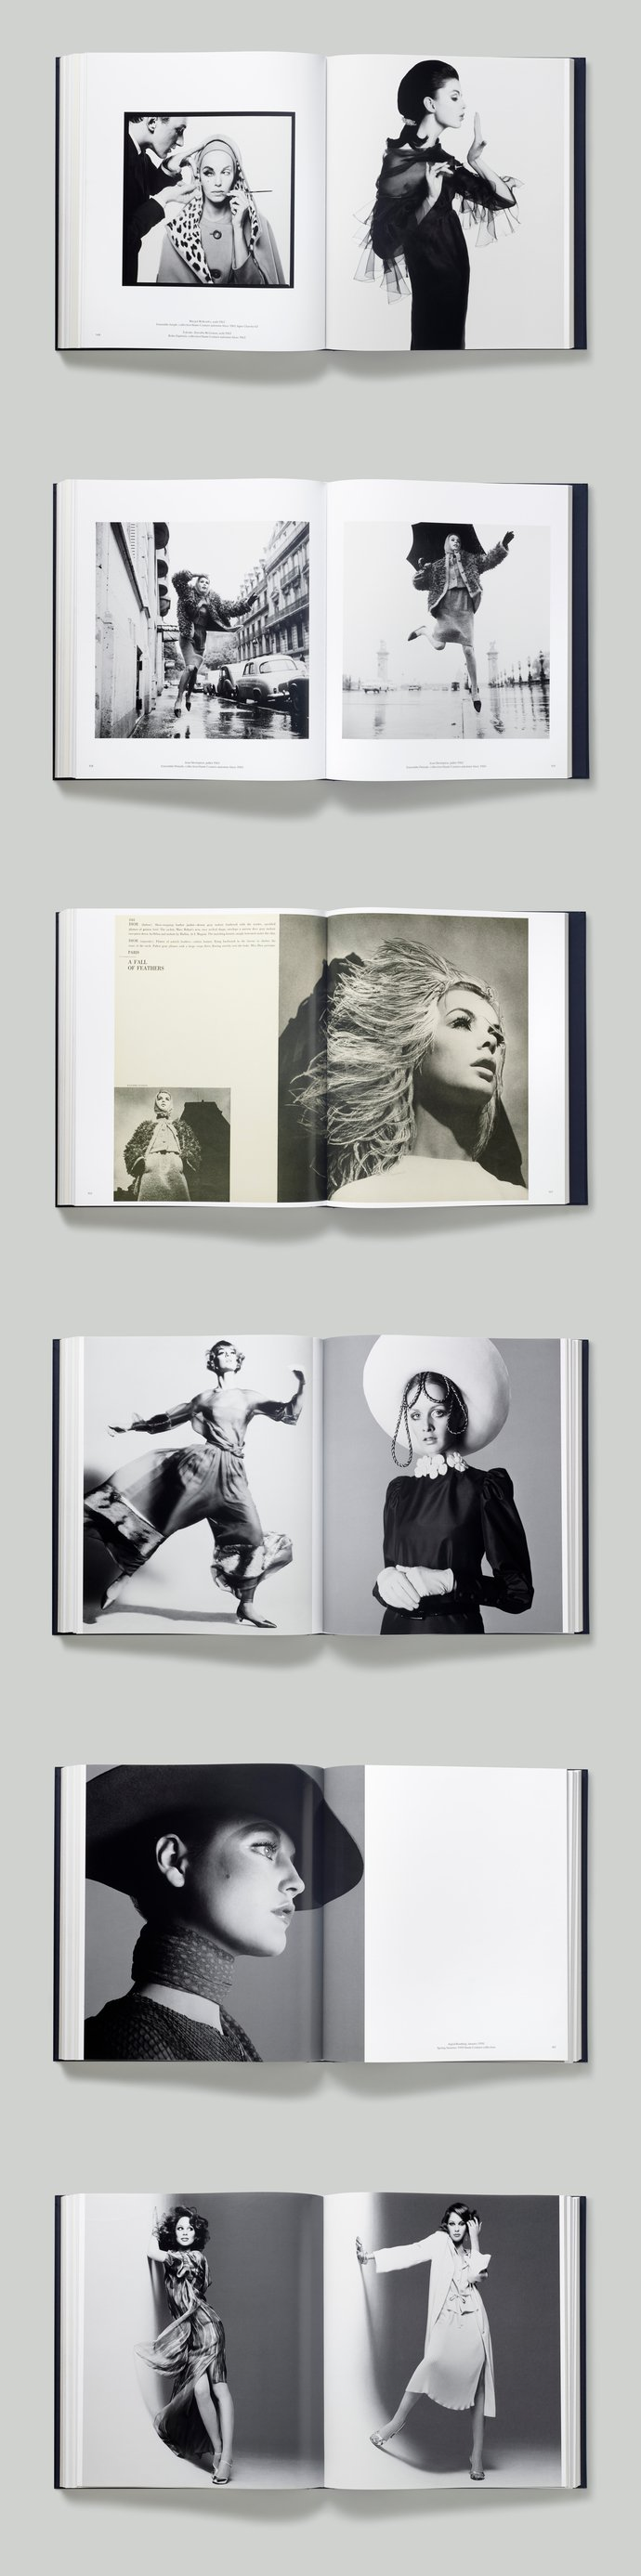 Dior/Rizzoli – Dior by Avedon, 2015 (Publication), image 5